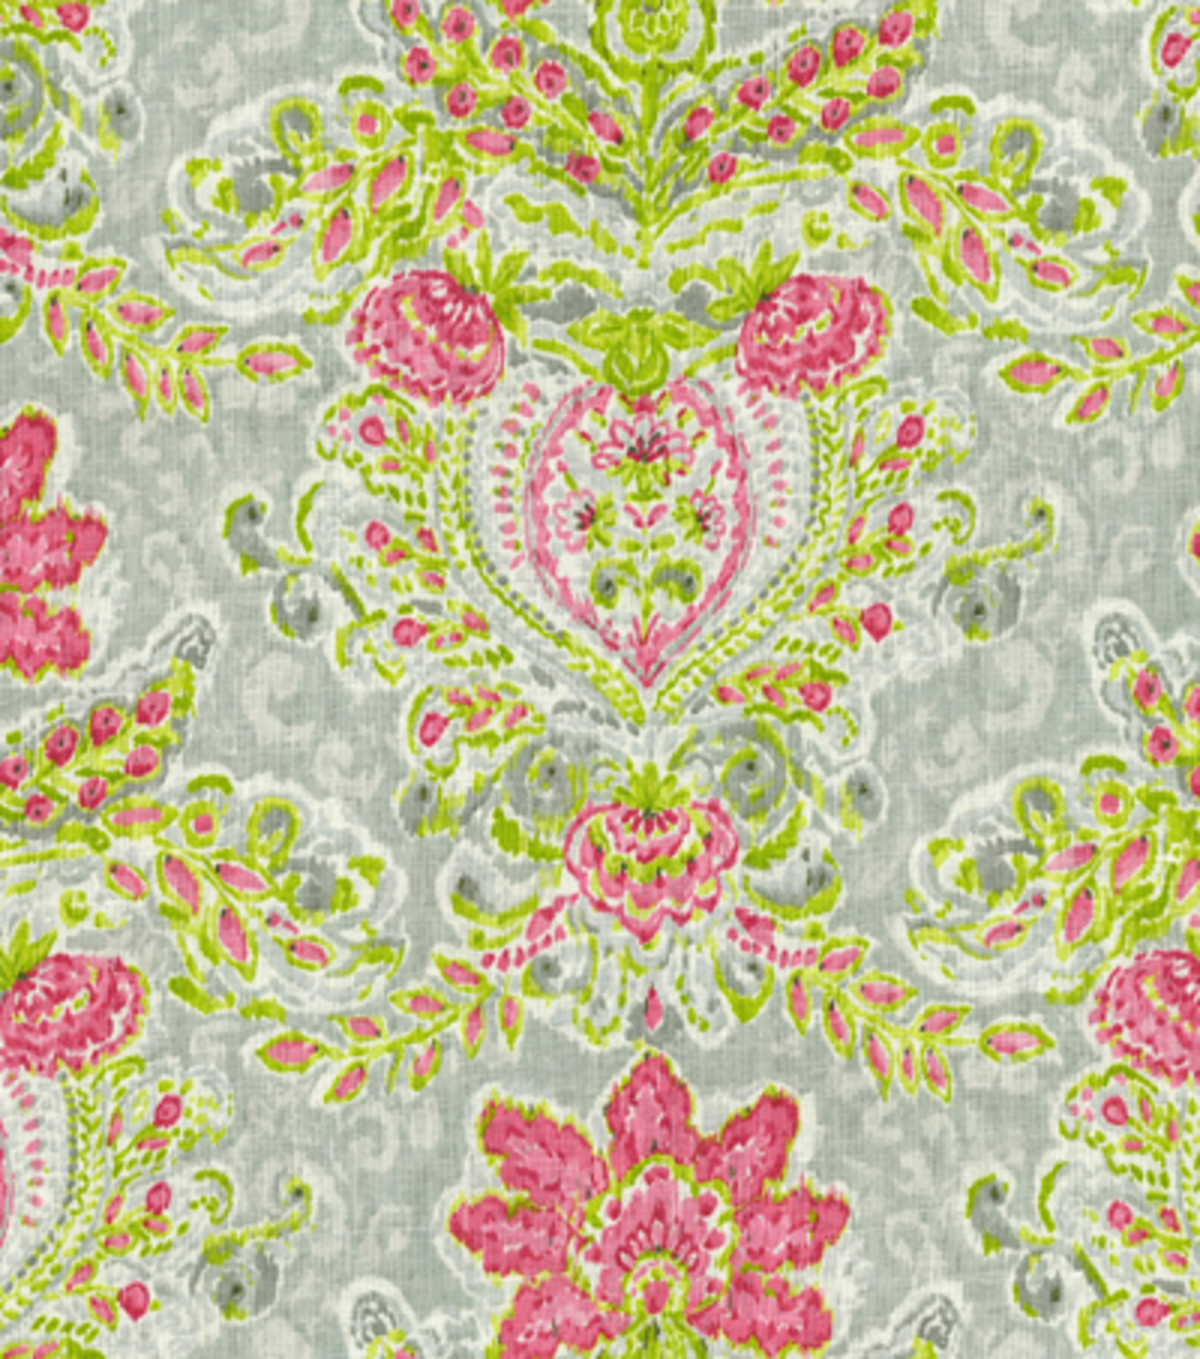 Home Decor 8\u0022x8\u0022 Fabric Swatch-Dena Crystal Vision Petal